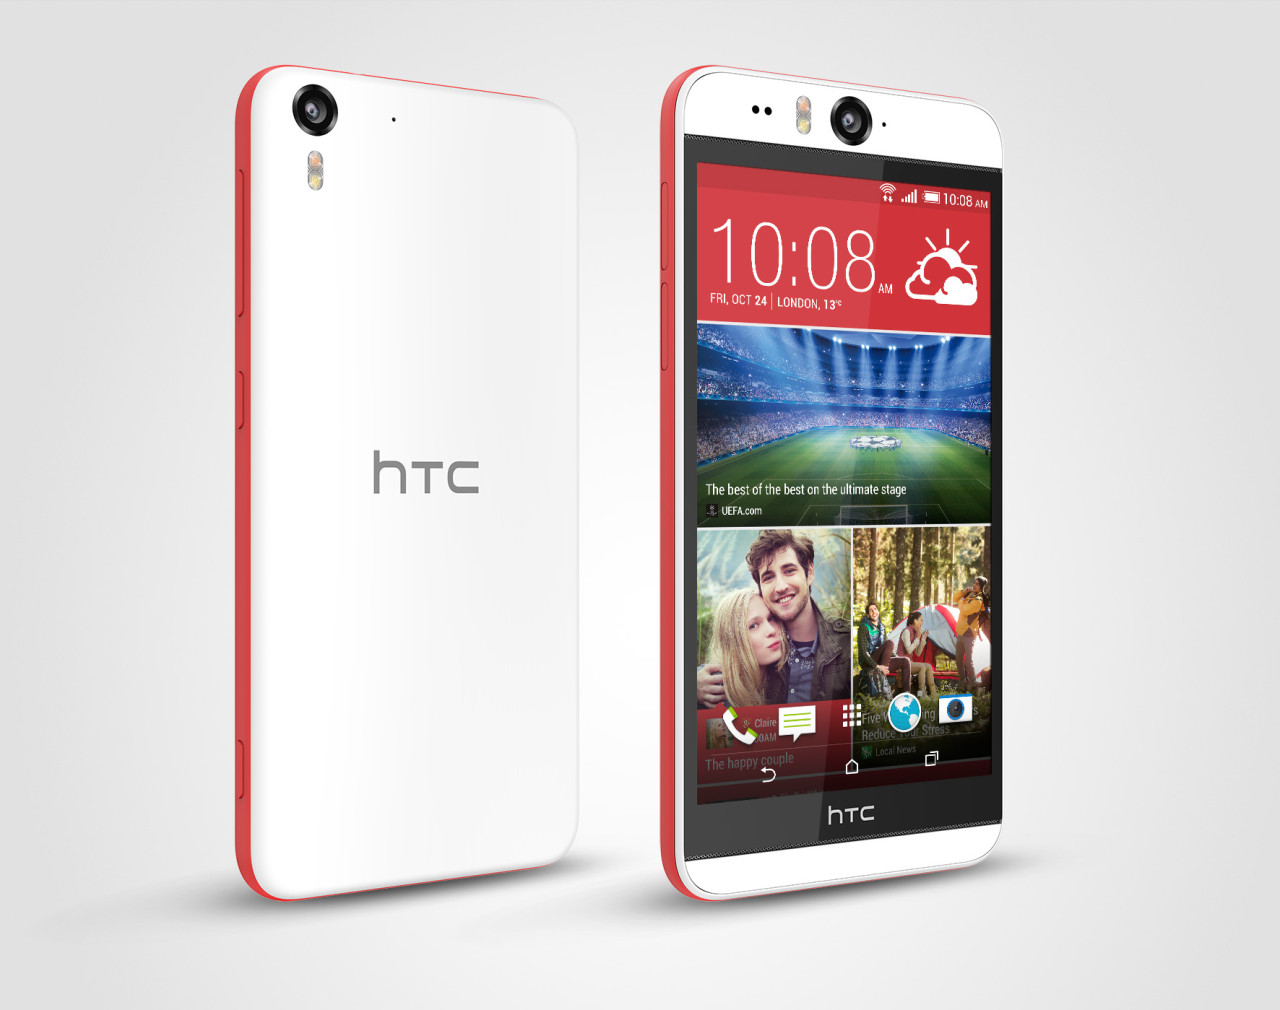 HTC-Desire-Eye-Matt-White-4-300dpi-1280x10101.jpg